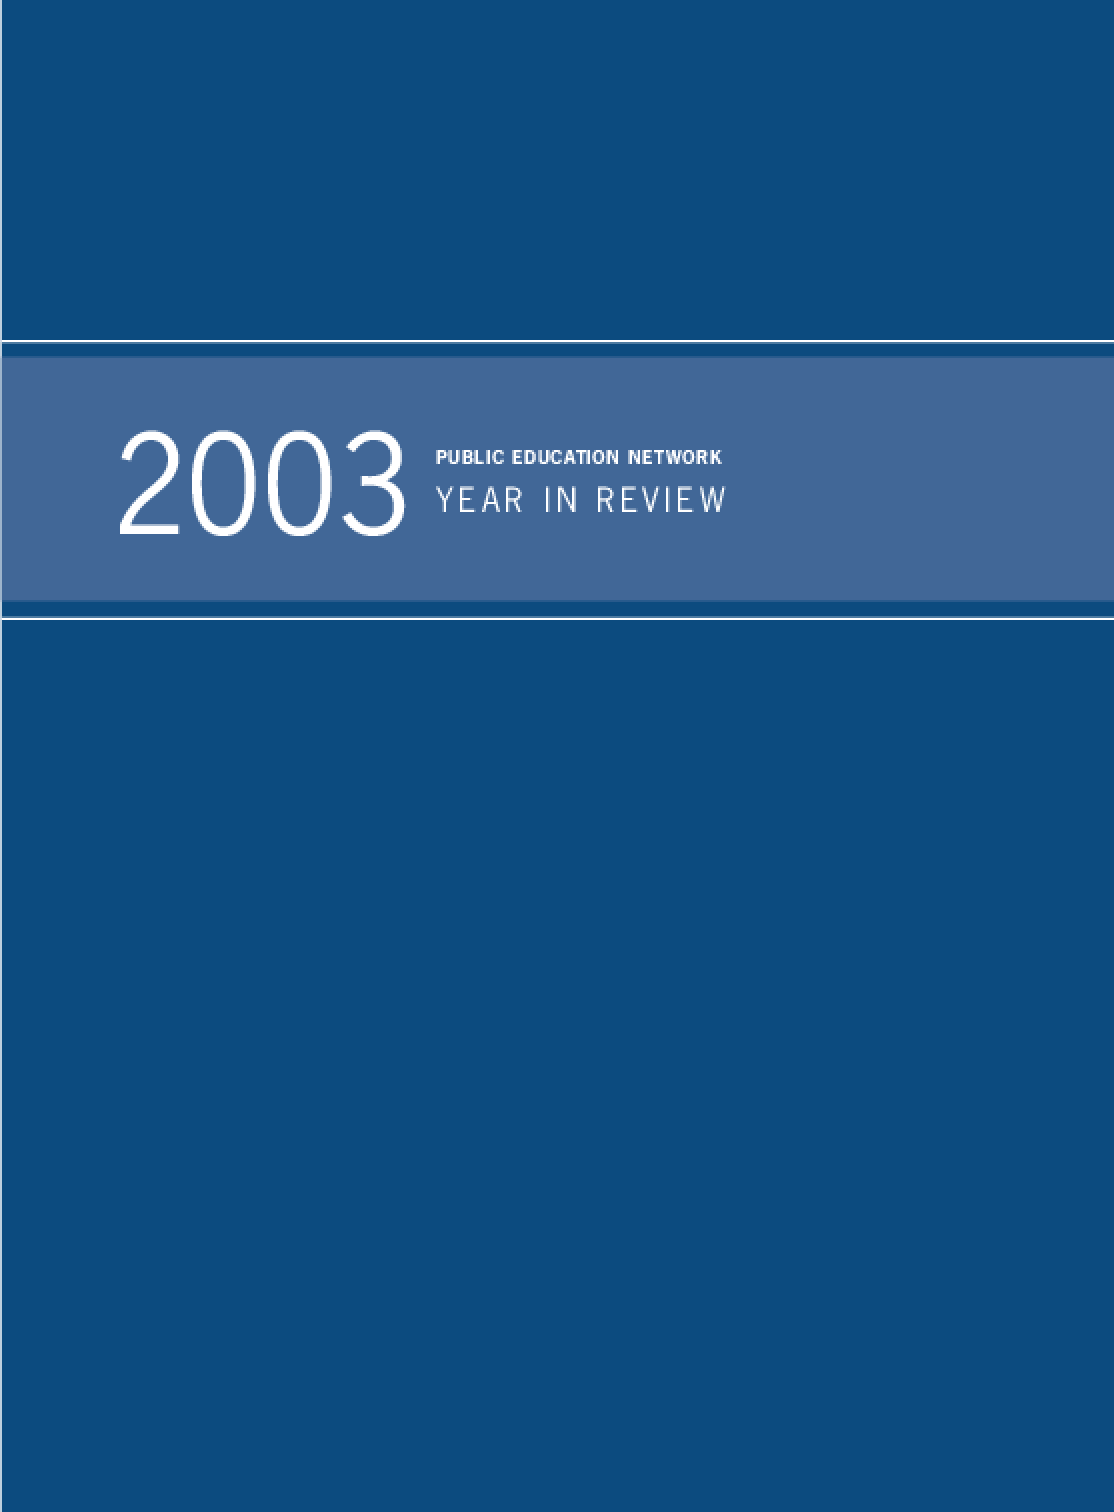 Public Education Network 2003 Year in Review